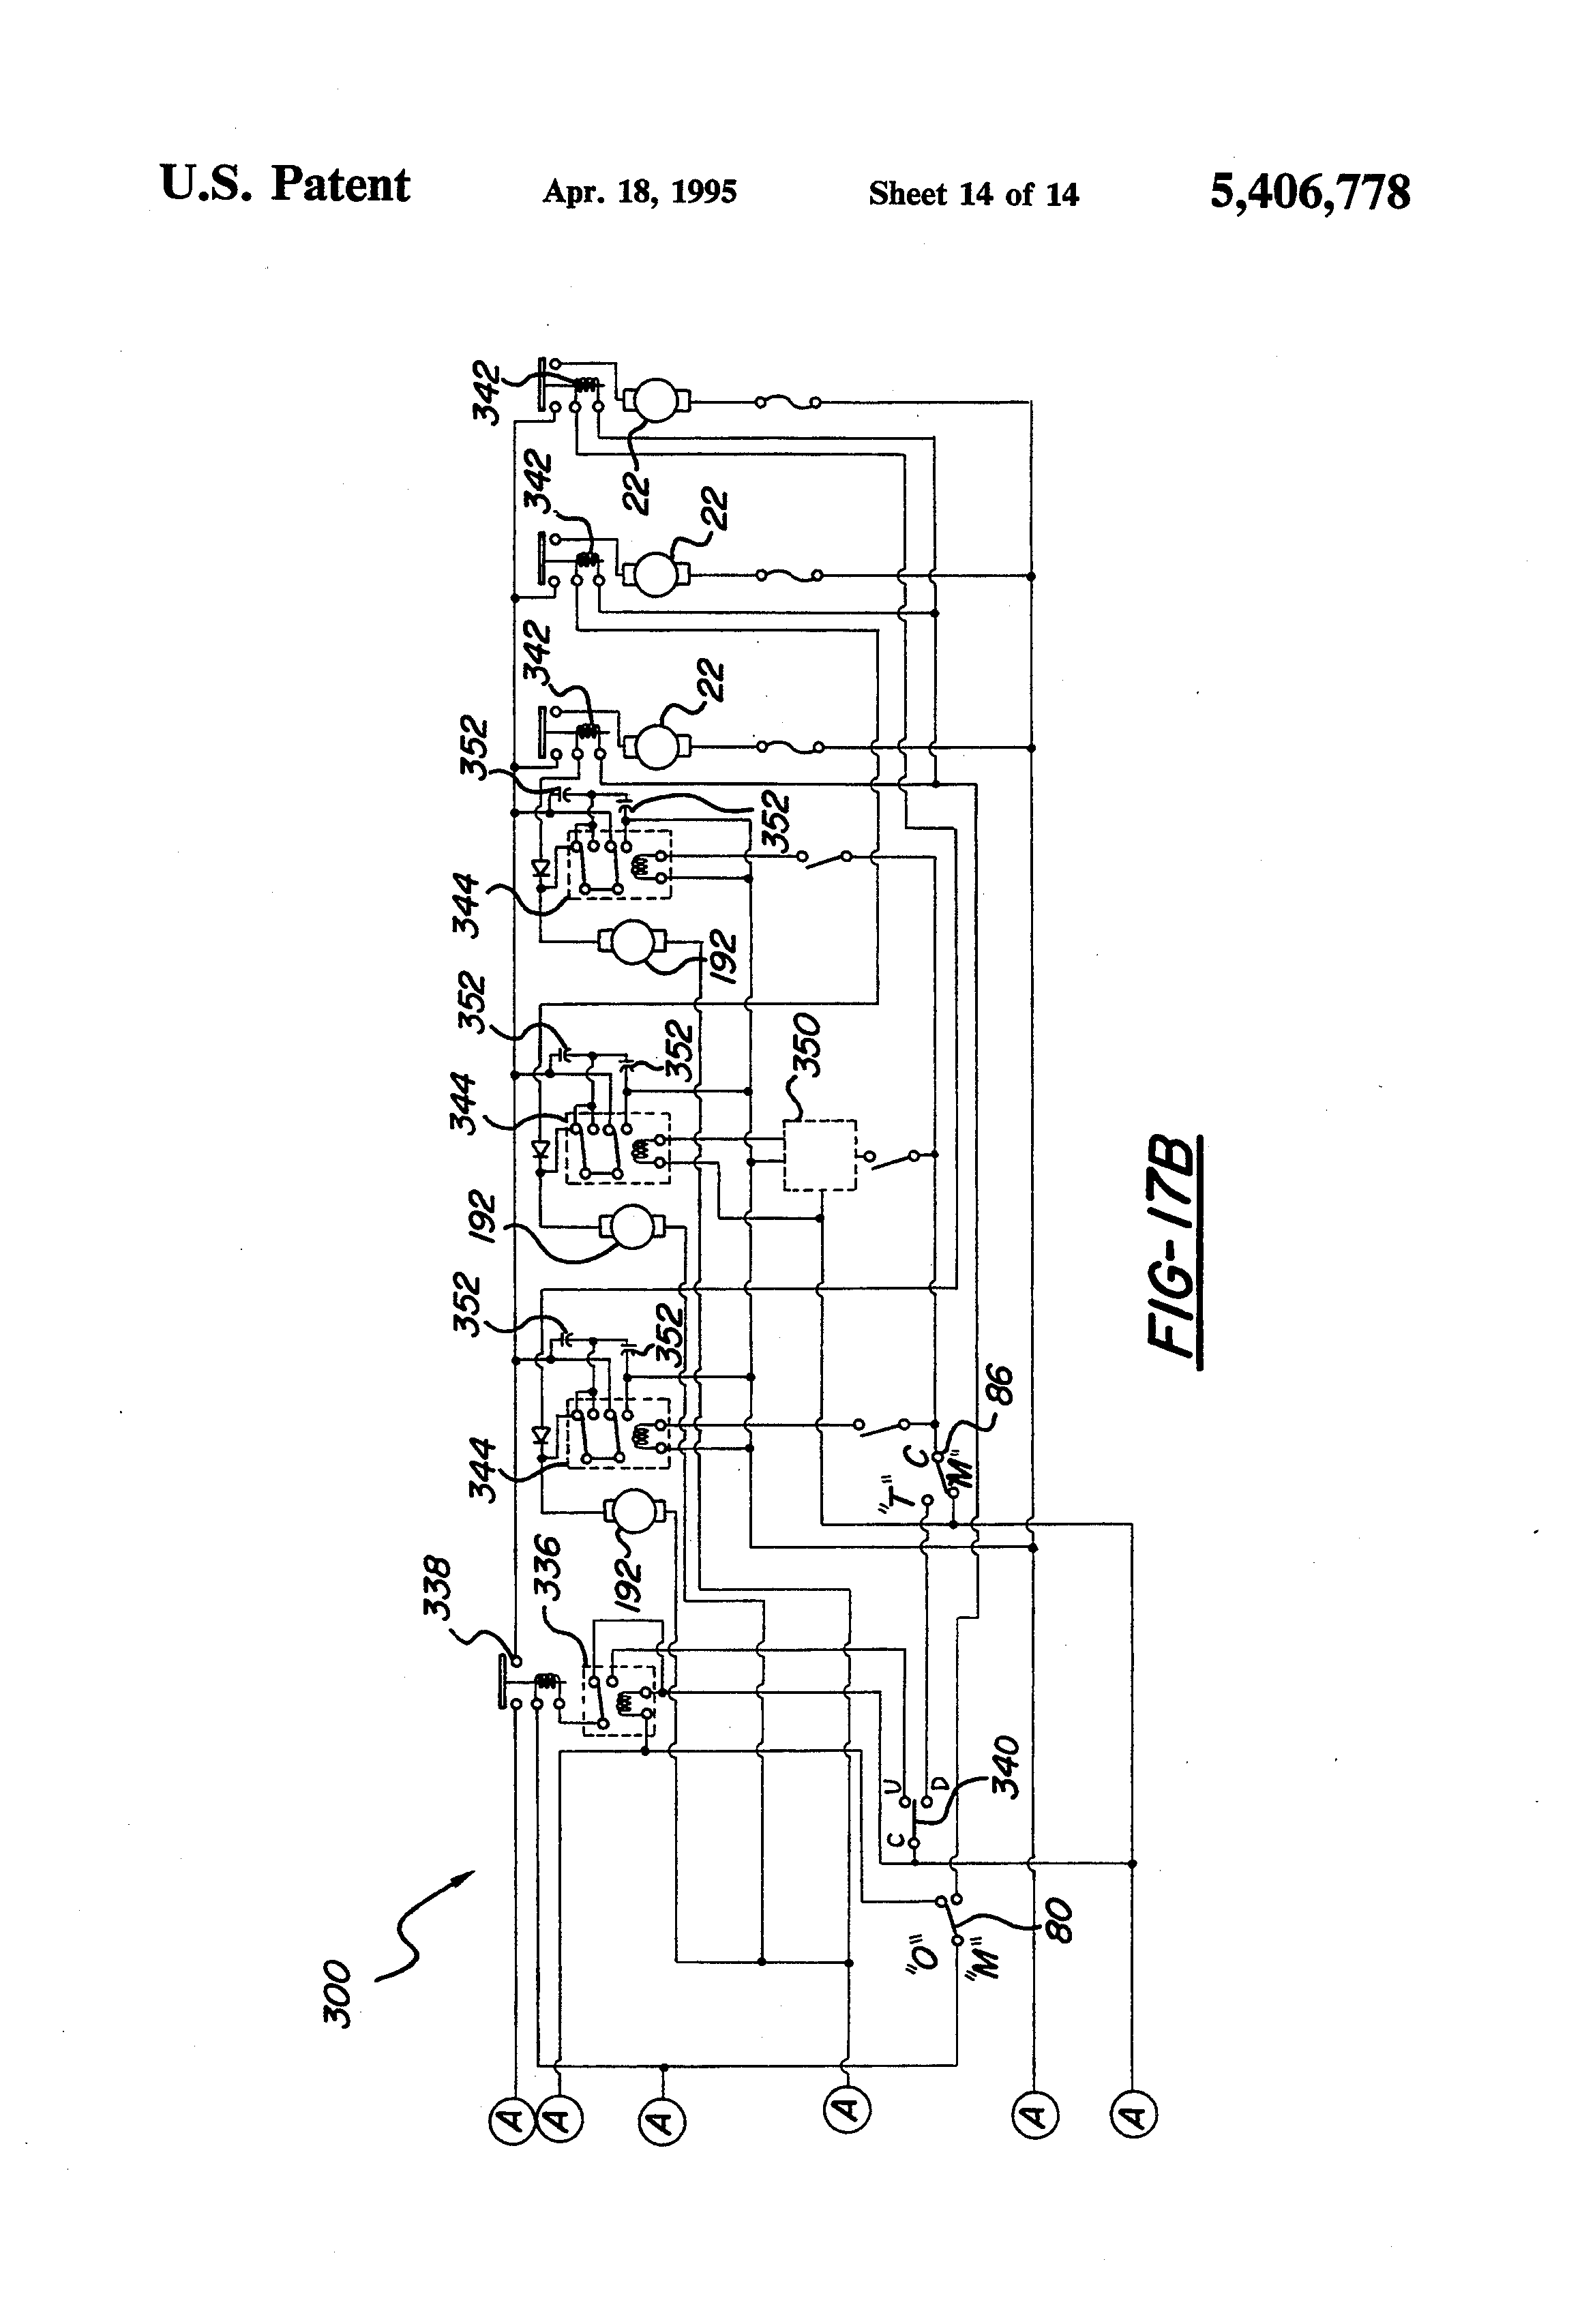 Patent Drawing  sc 1 st  Google : electric lawn mower wiring diagram - yogabreezes.com